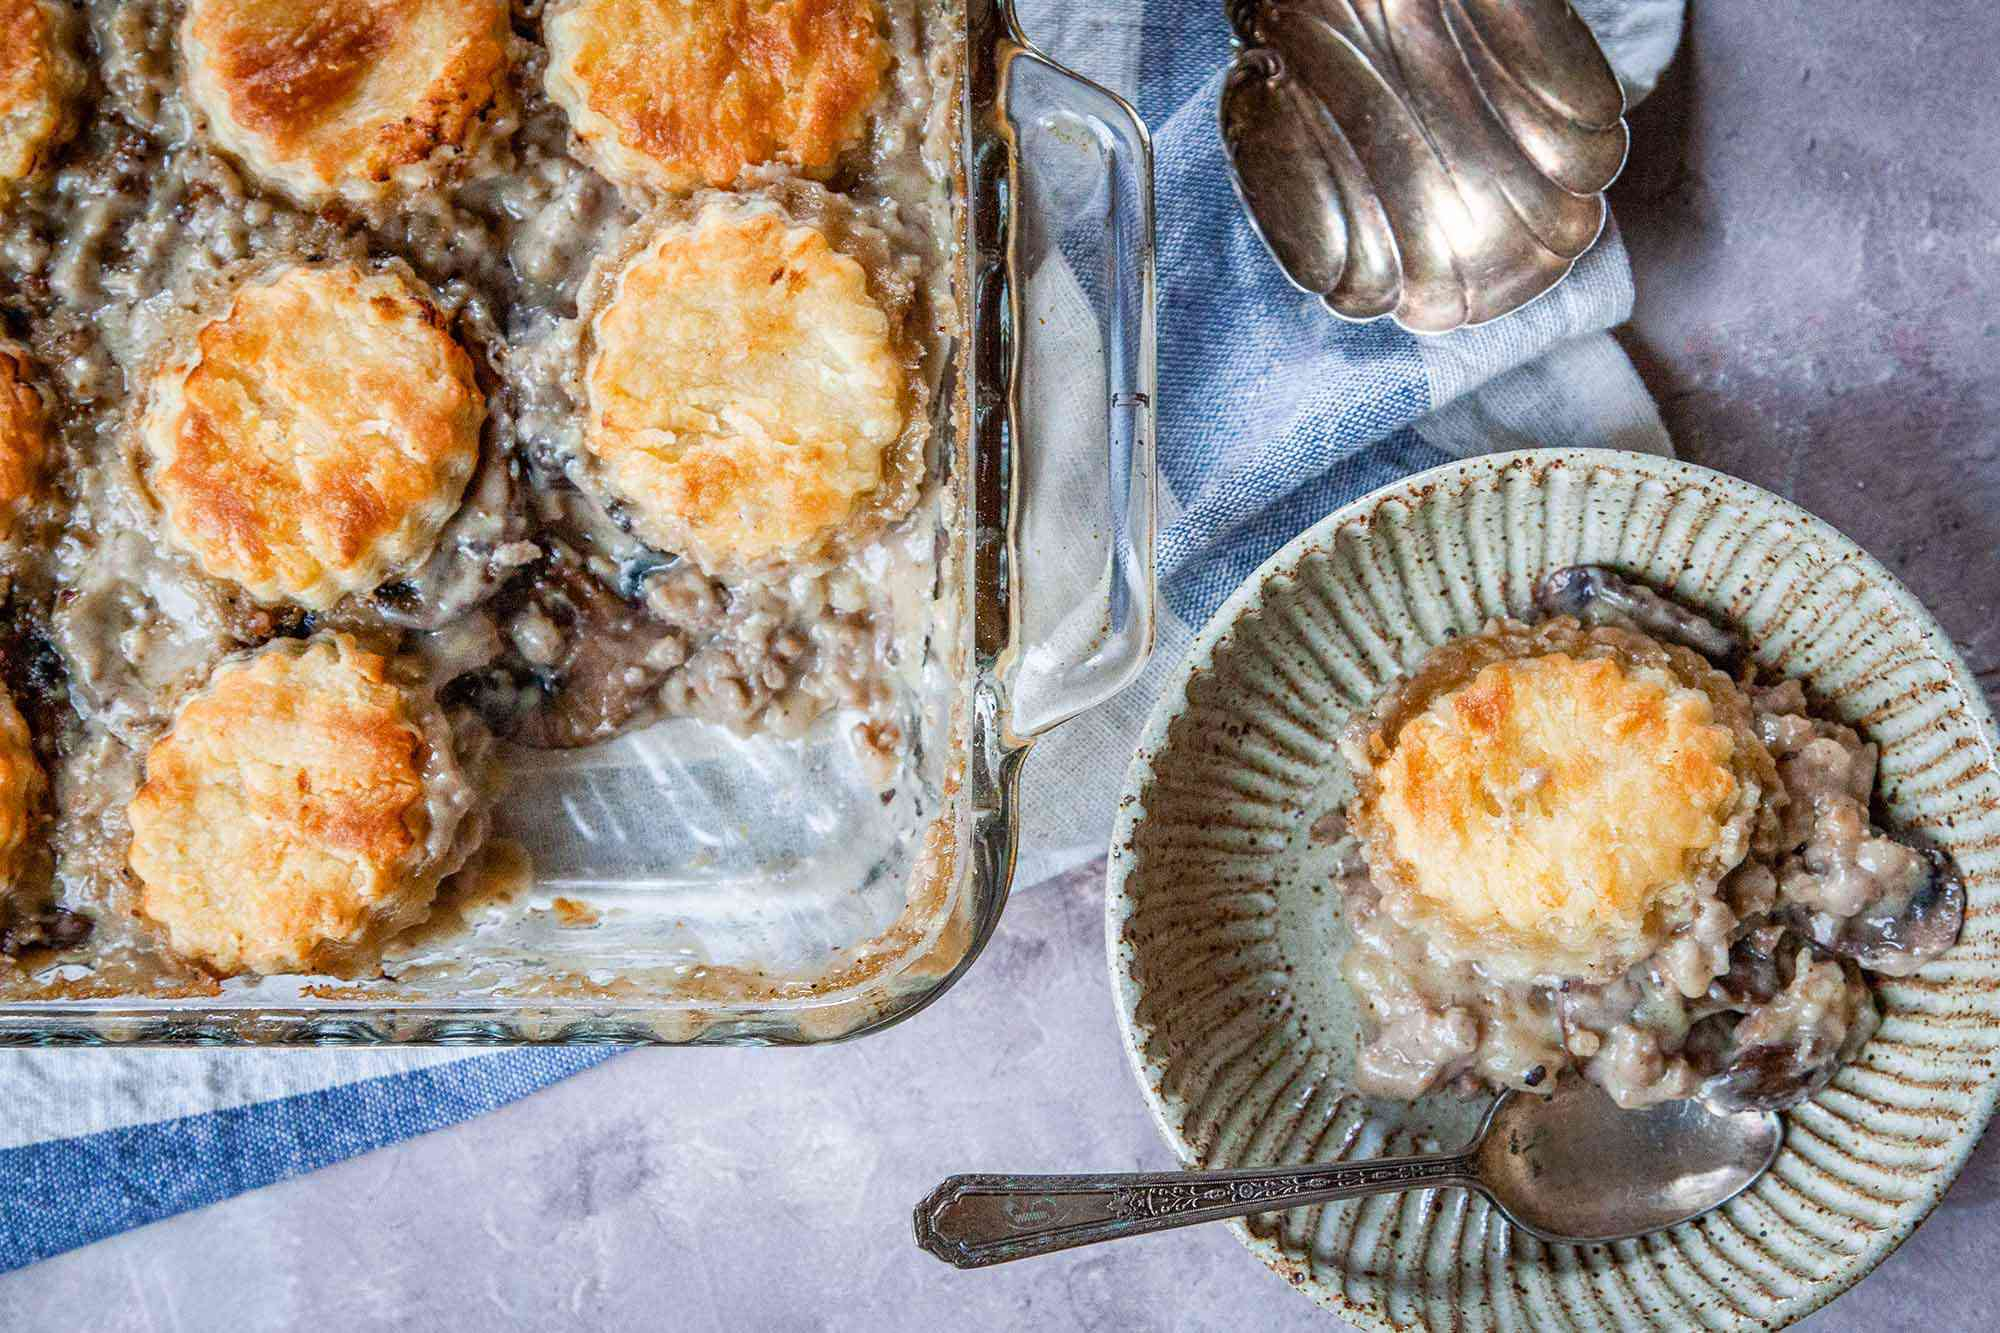 Biscuits and Gravy Bake